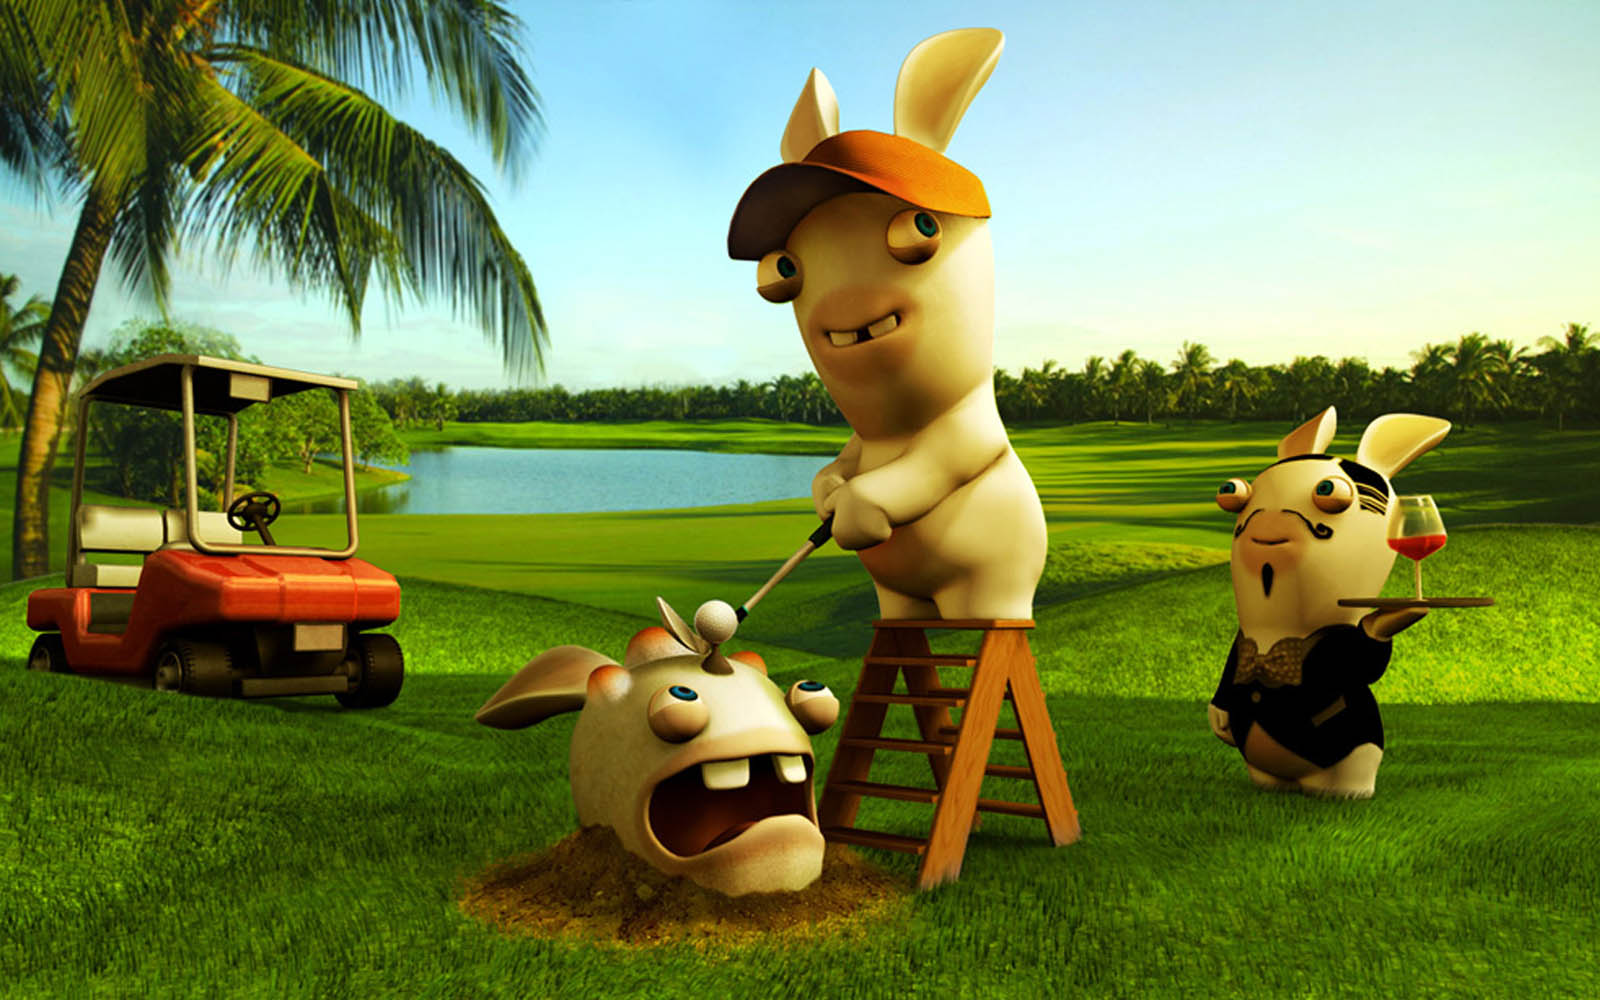 Wallpapers Funny Rayman Raving Rabbids Wallpapers